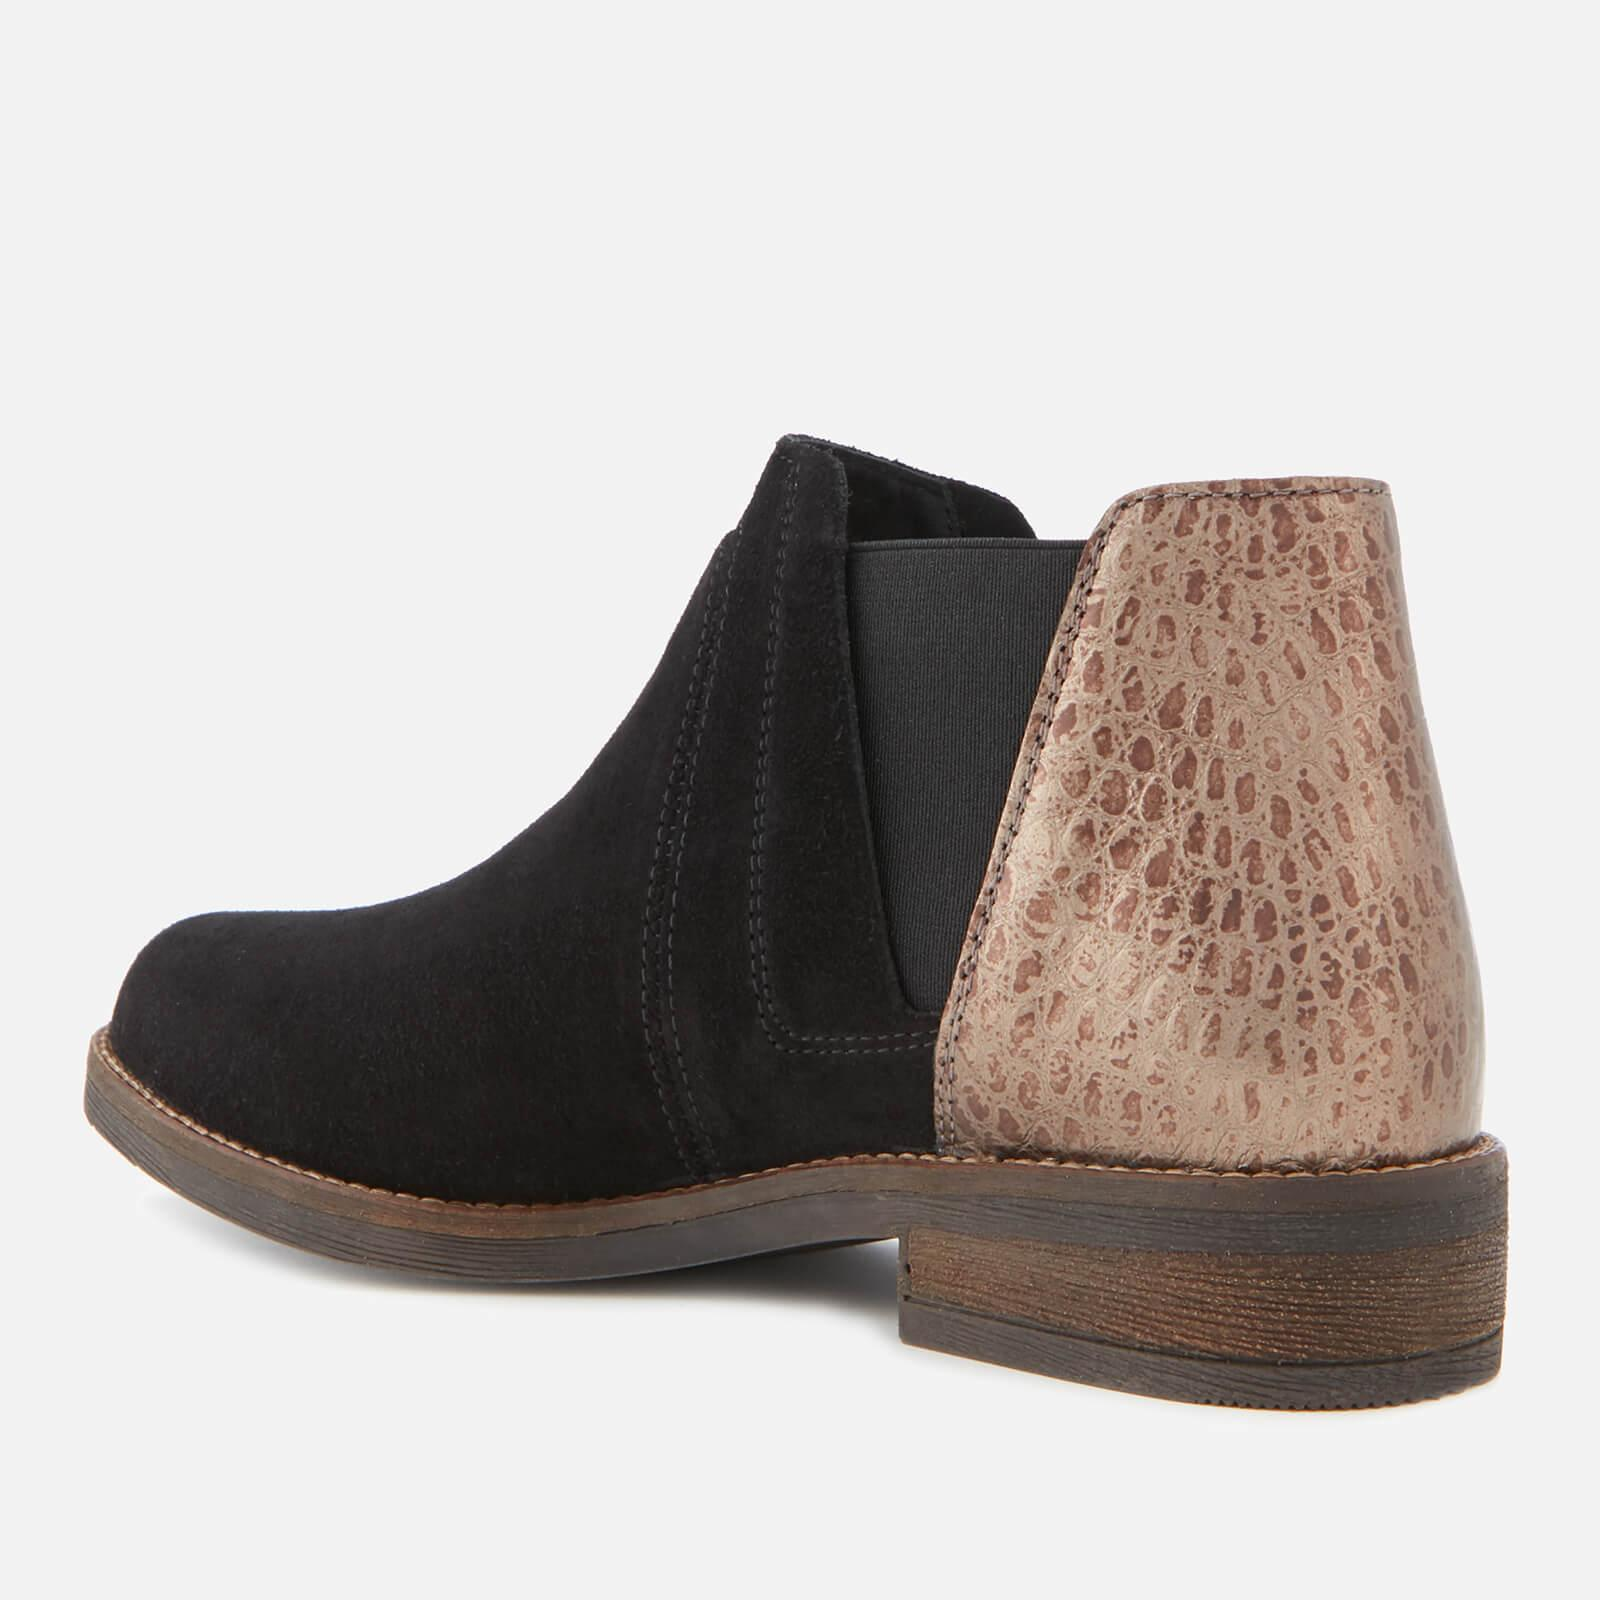 fefd76fe2 Clarks - Black Demi Beat Suede Ankle Boots - Lyst. View fullscreen